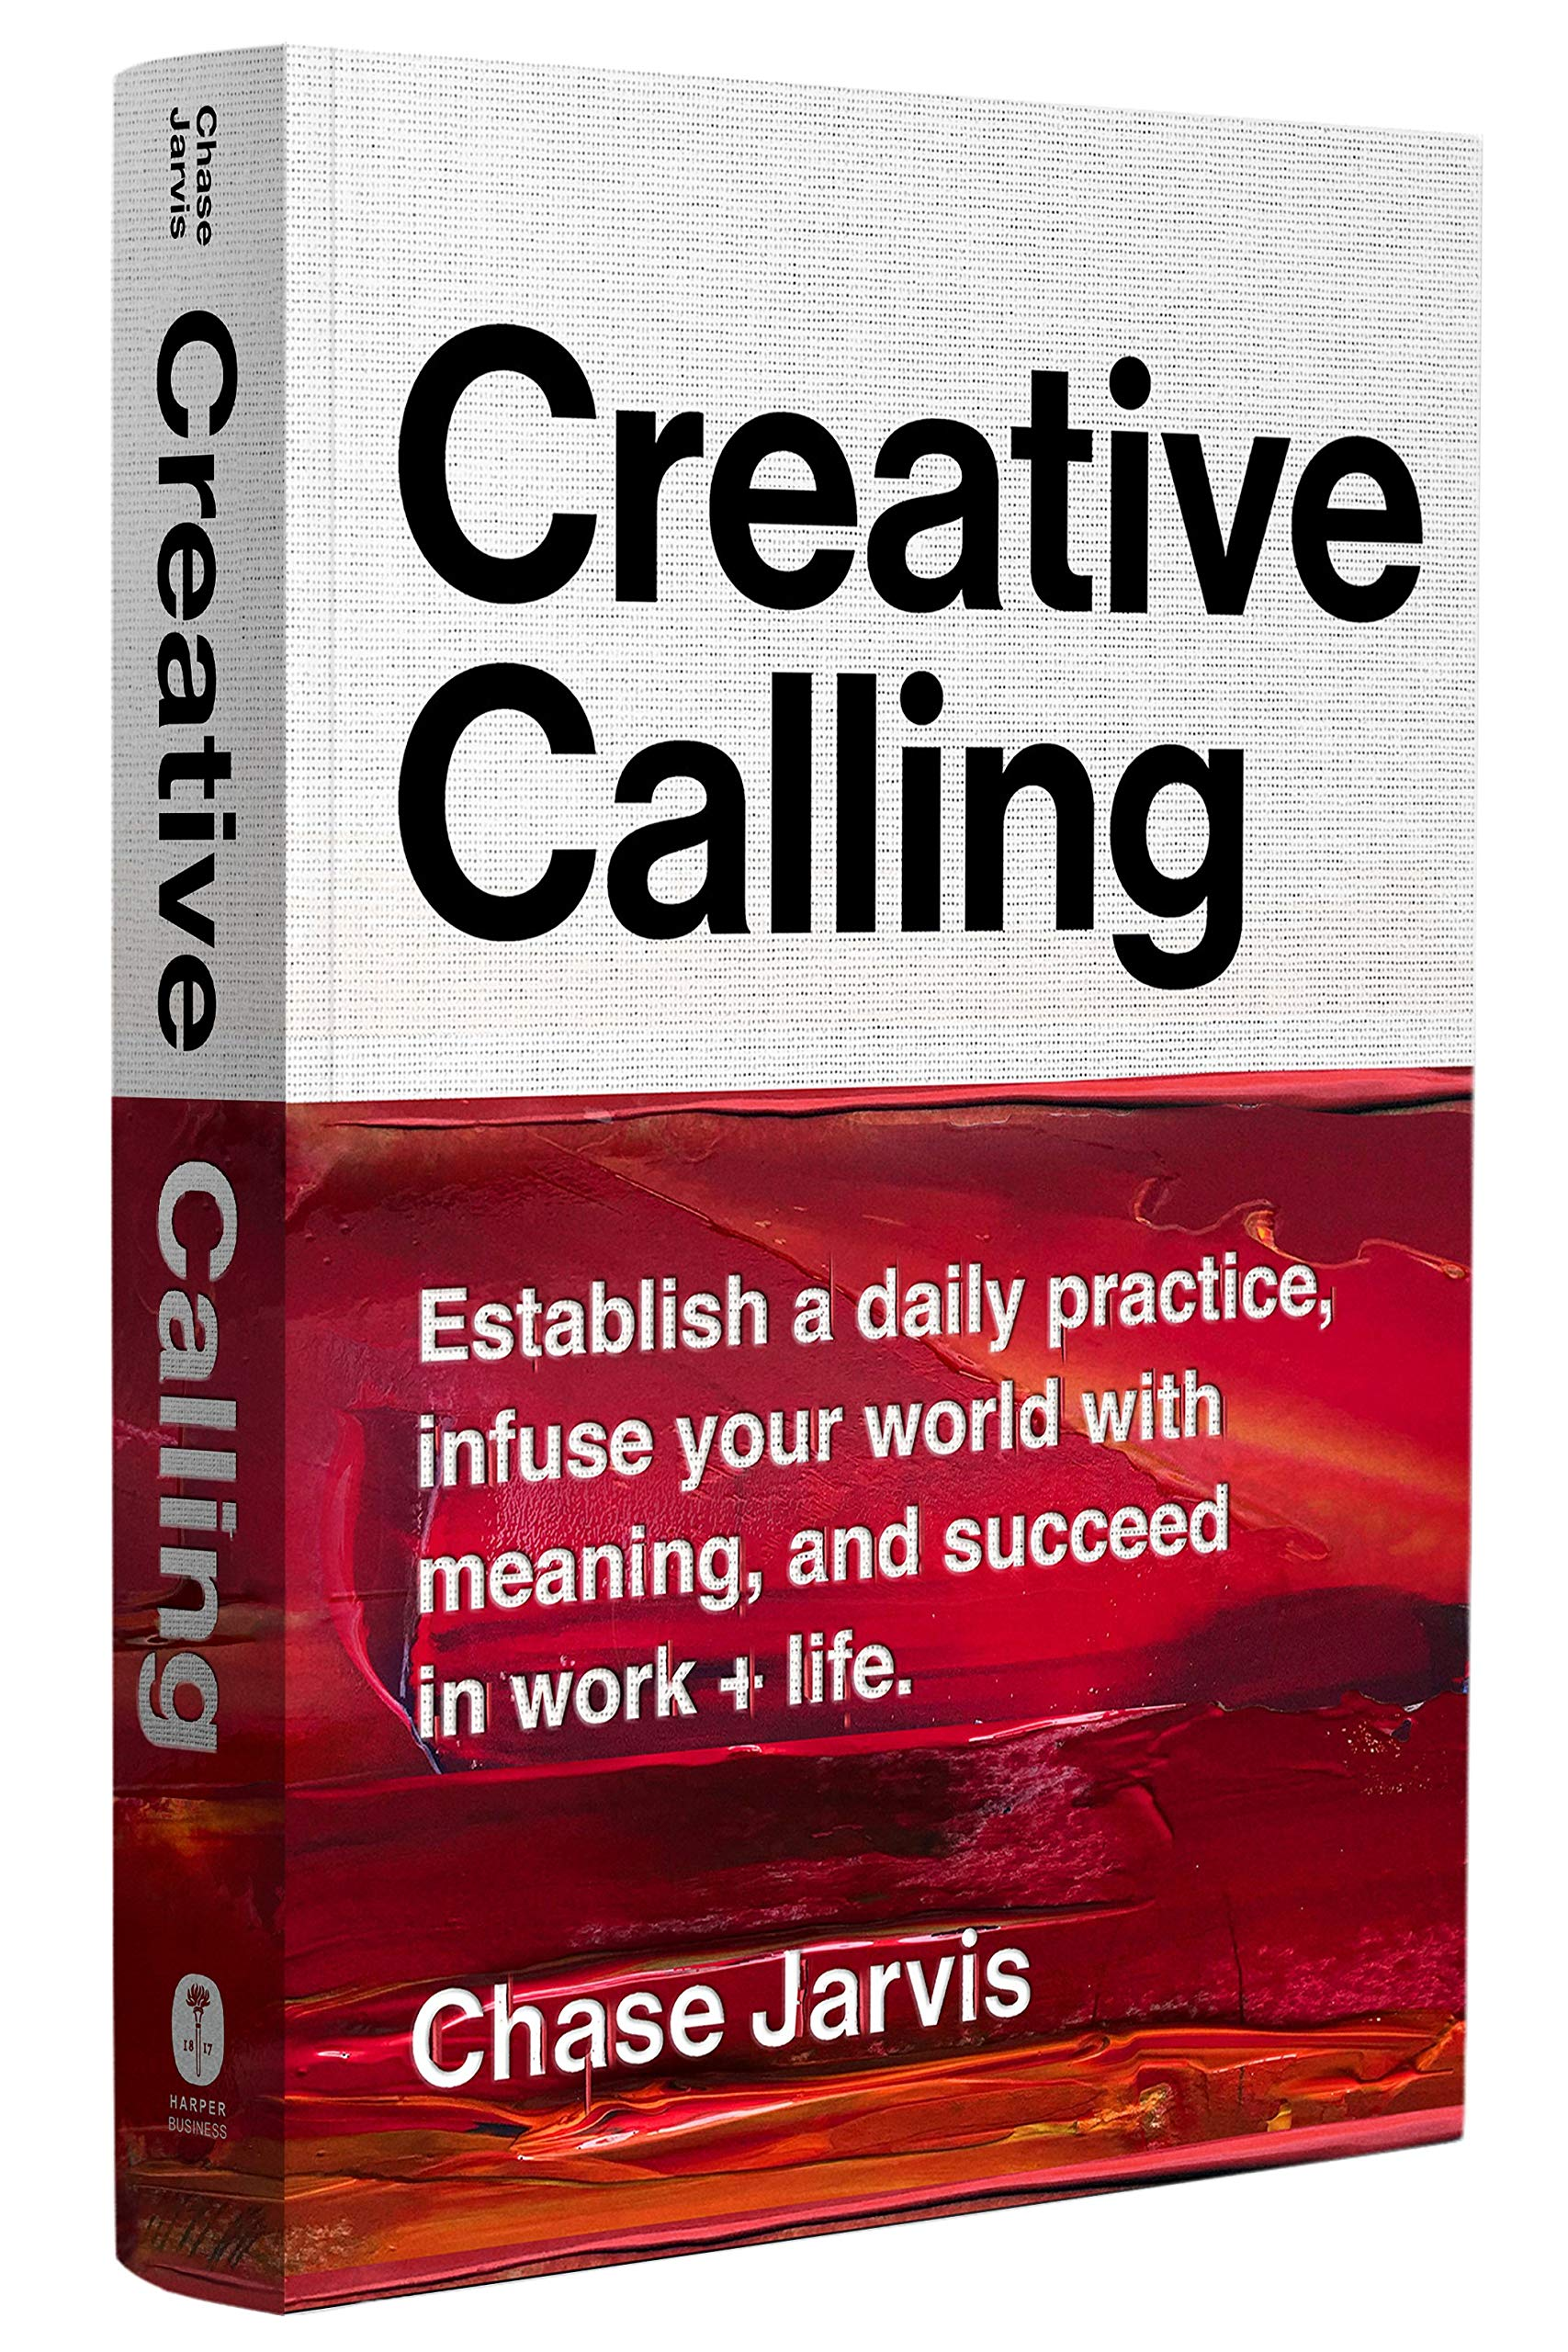 Creative calling, book by Chase Jarvis, www.Fenne.be